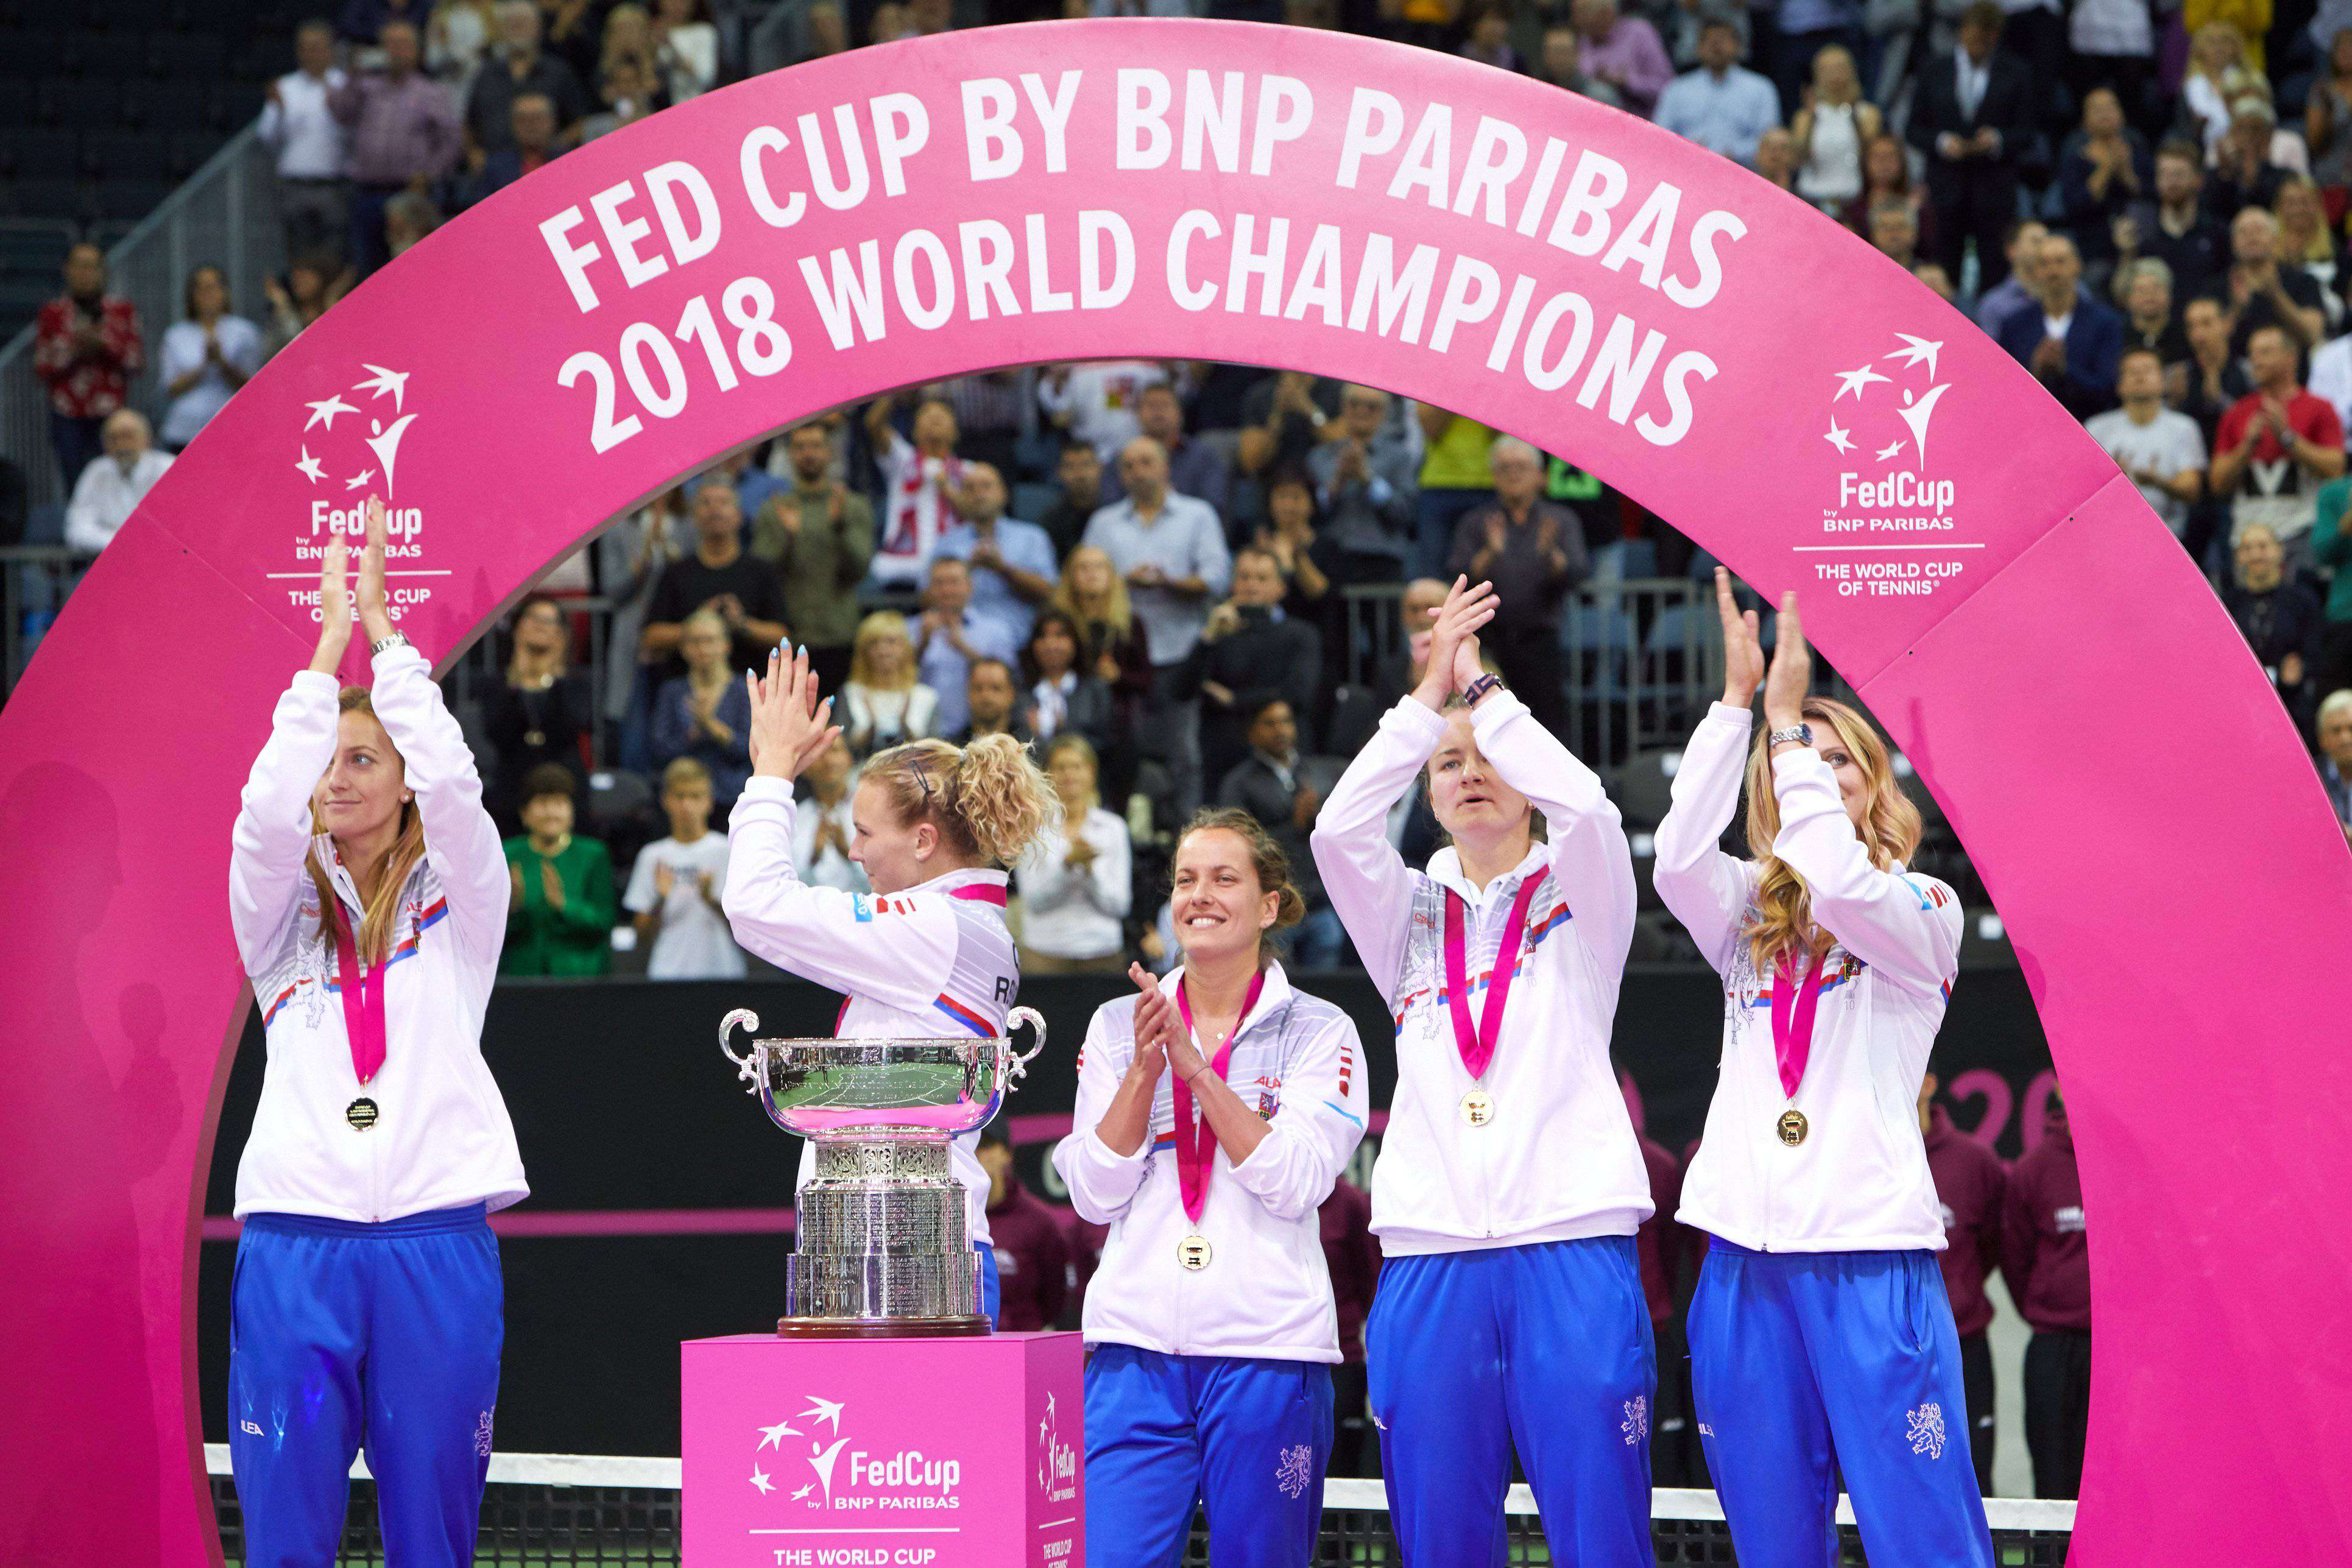 Fed Cup by BNP Paribas 2018 Final CZE vs. USA